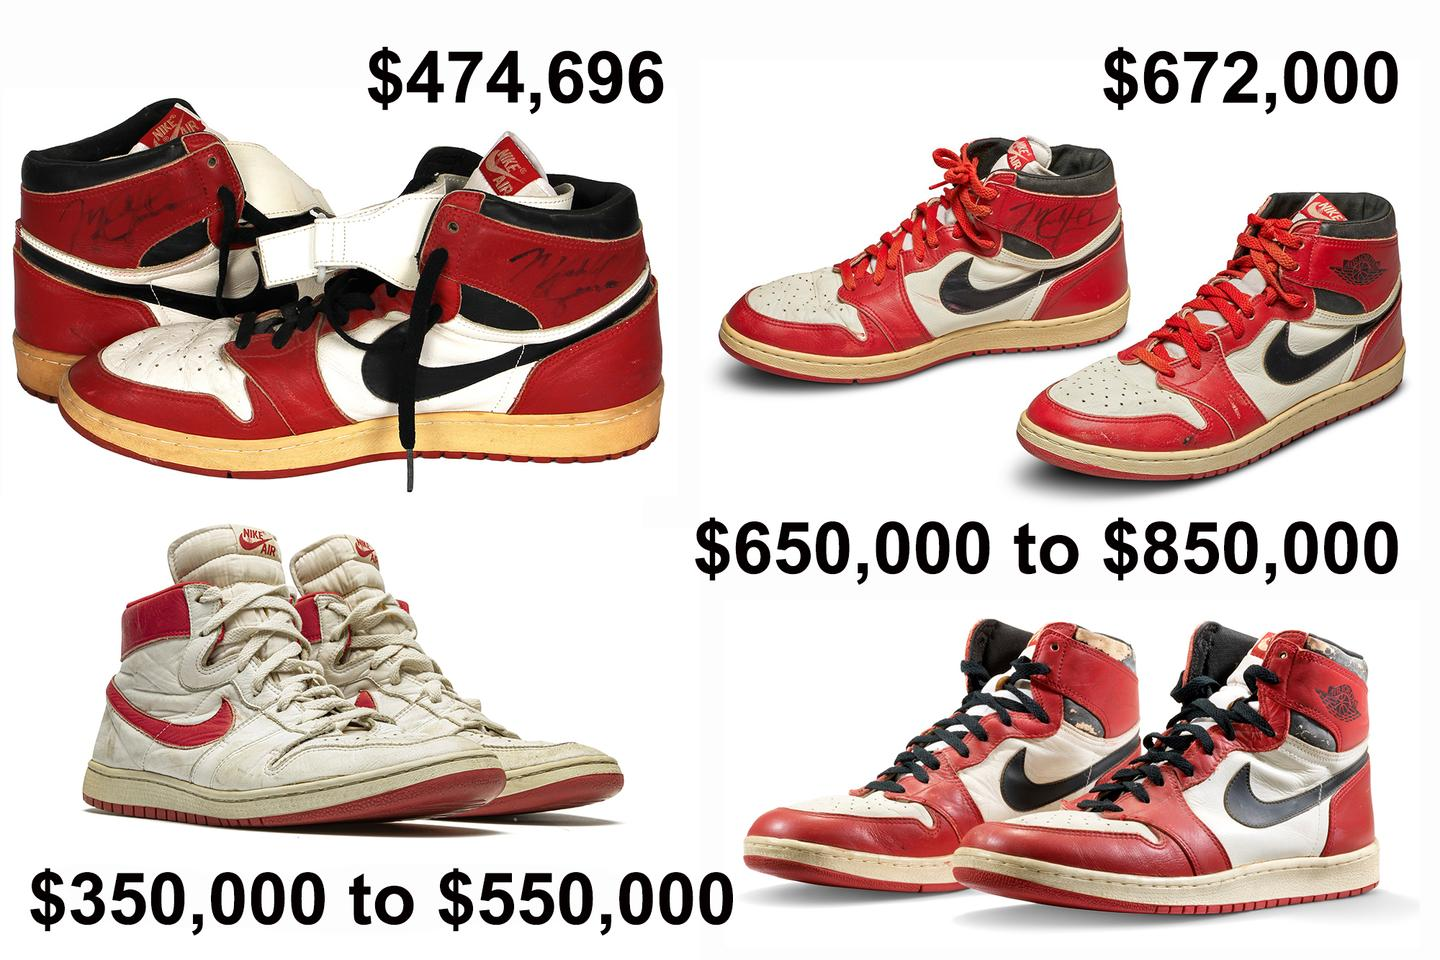 Michael Jordan has sold the two most valuable pairs of sneakers (indeed, ANY footwear) in history in the last three months and seems likely to own the top four prices ever inside the next two weeks.